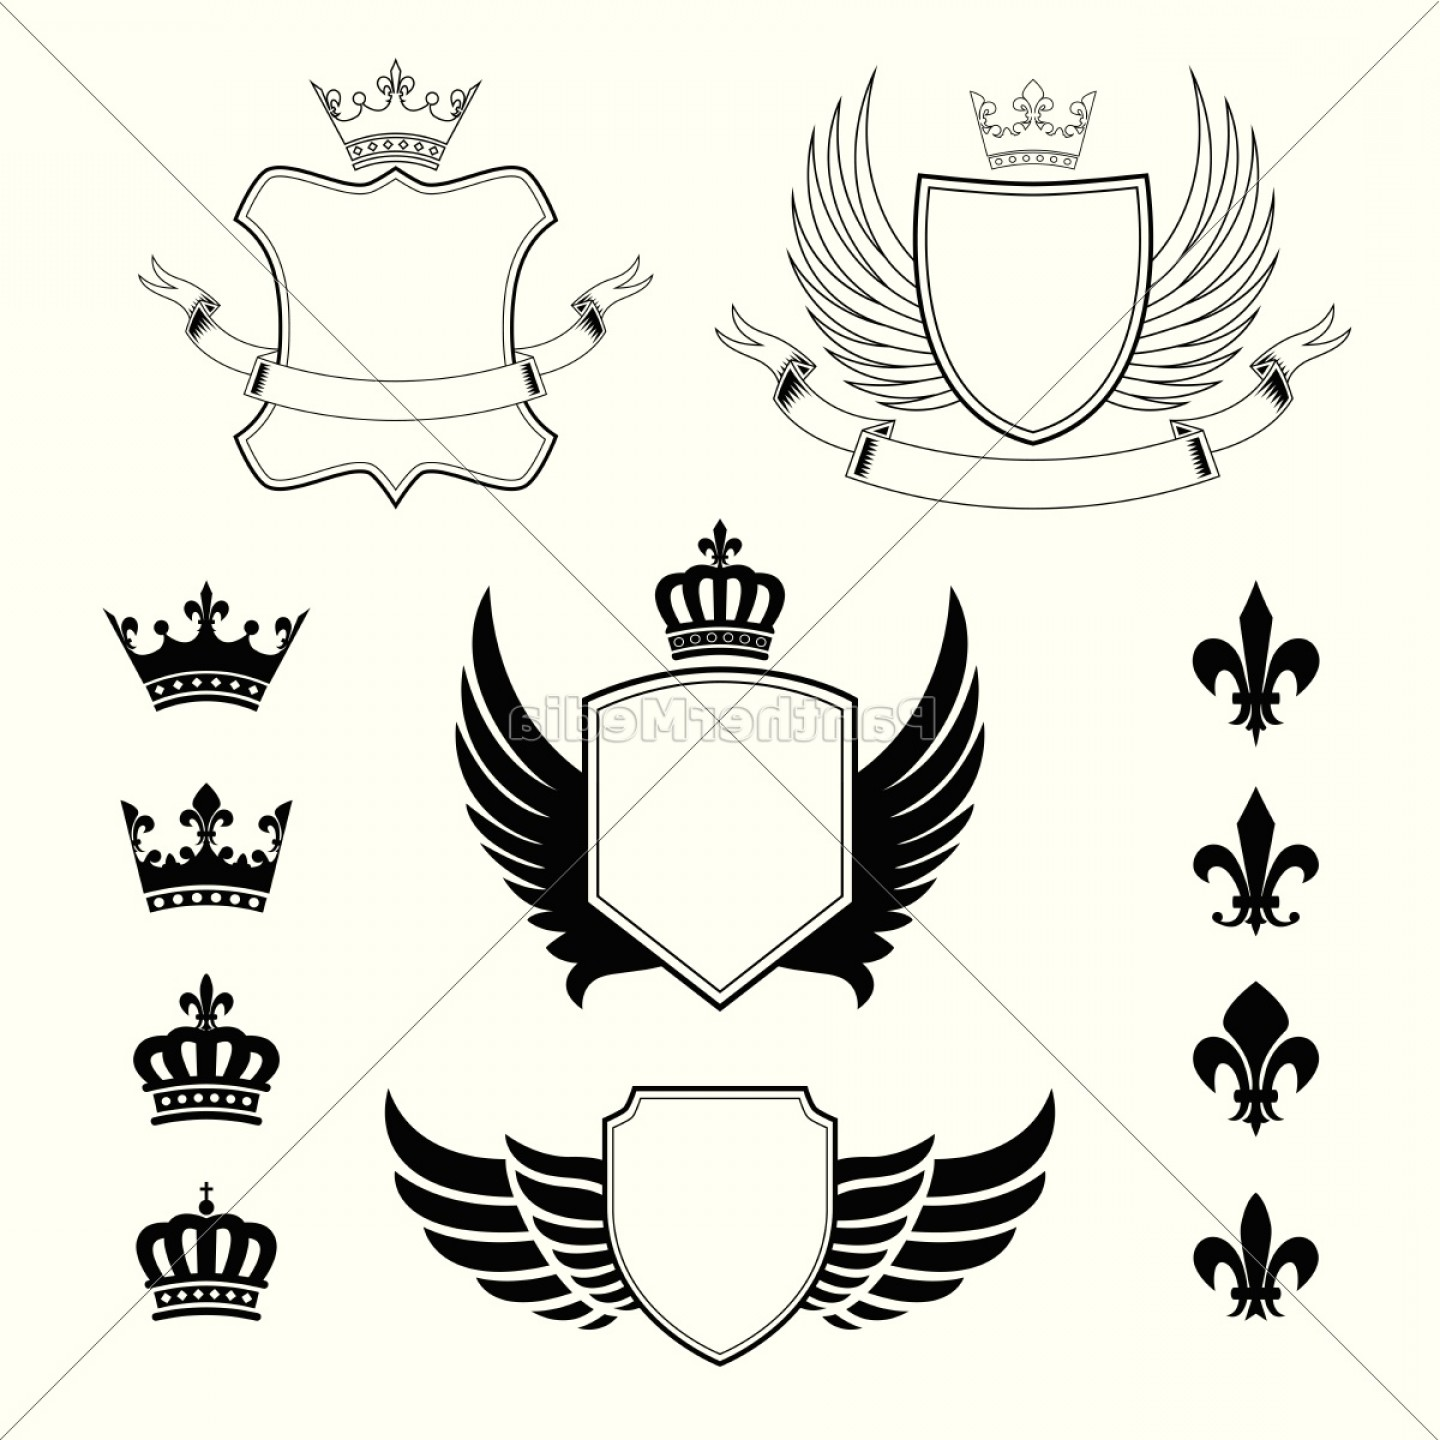 Crest And Coat Of Arms Vector Silhouette: Set Of Winged Shields Coat